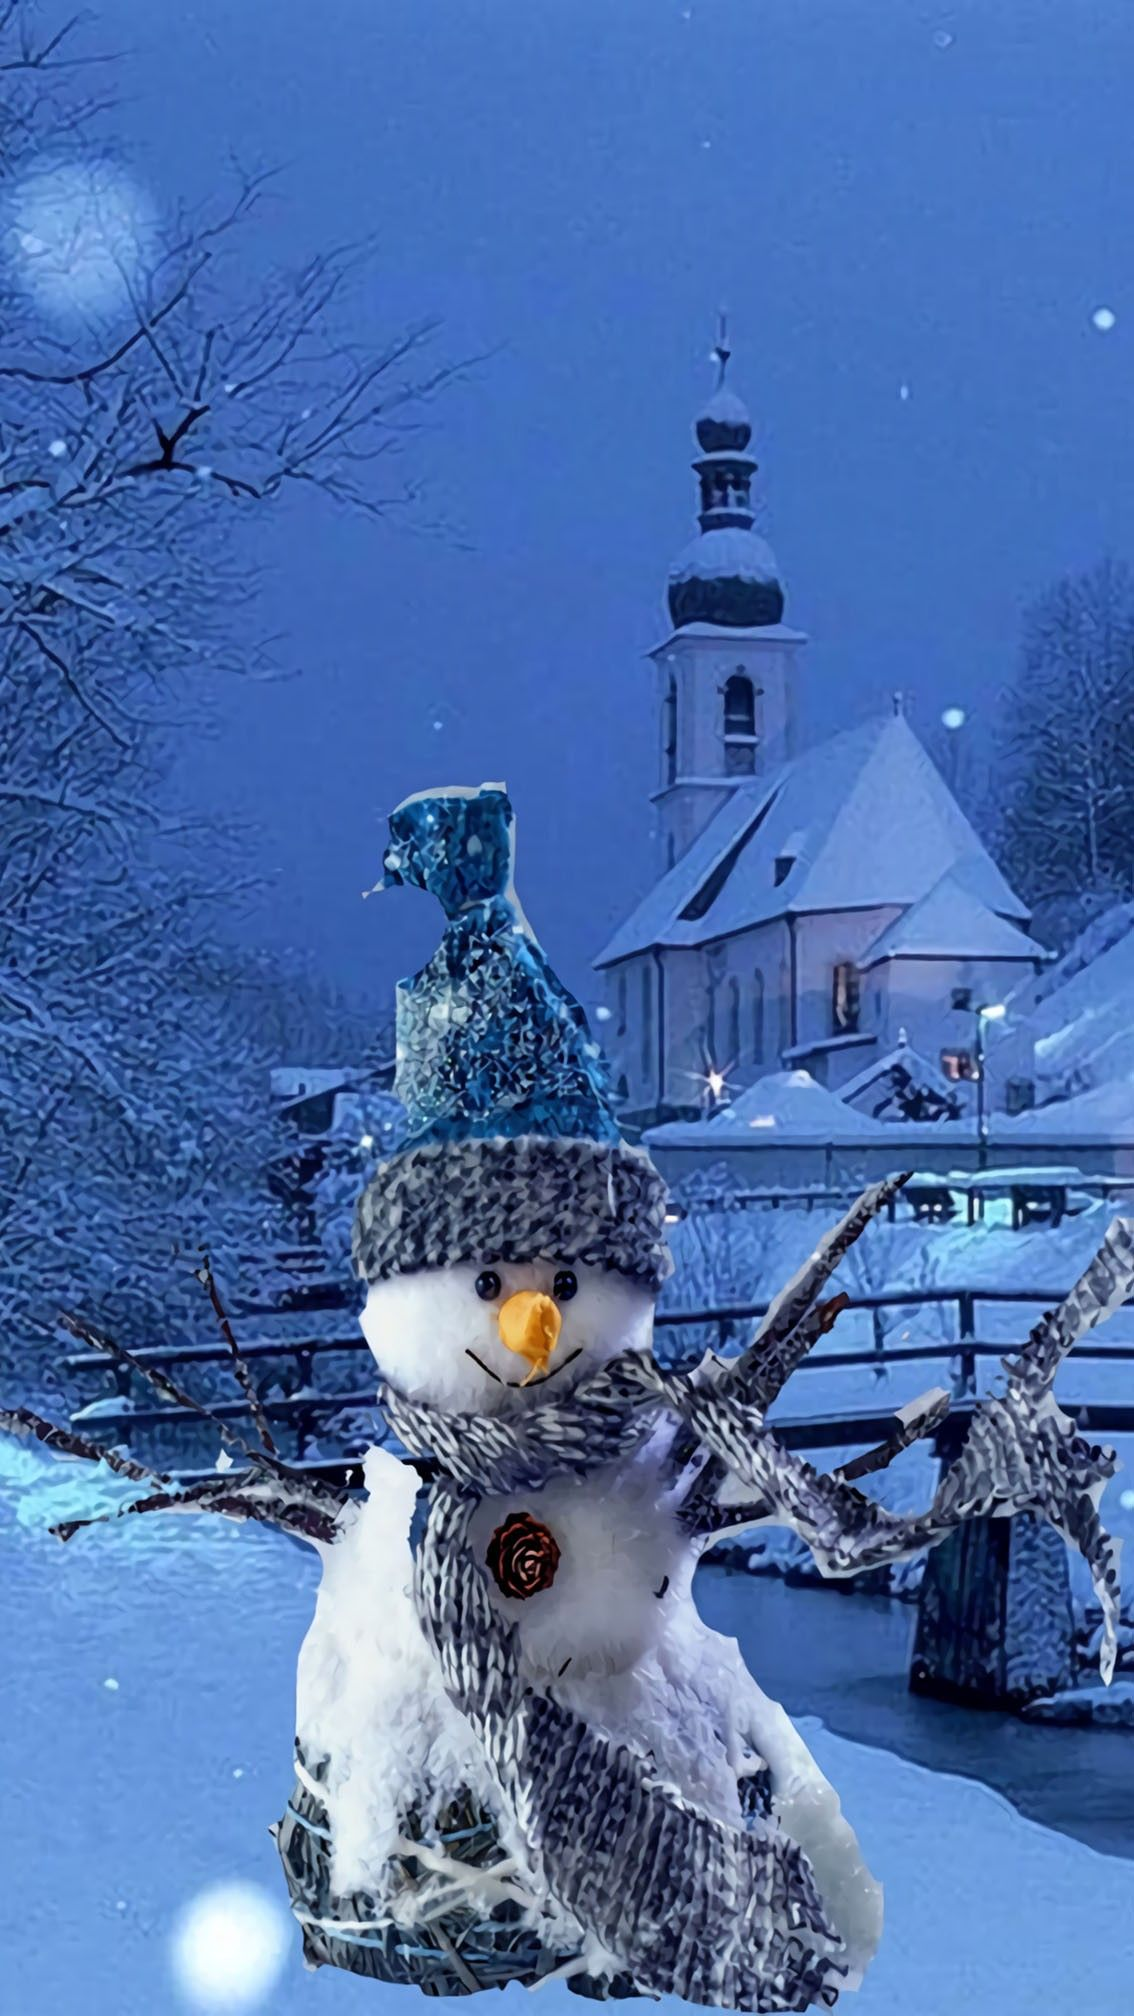 Download Merry Christmas Snowman Wallpaper Blue and Silver